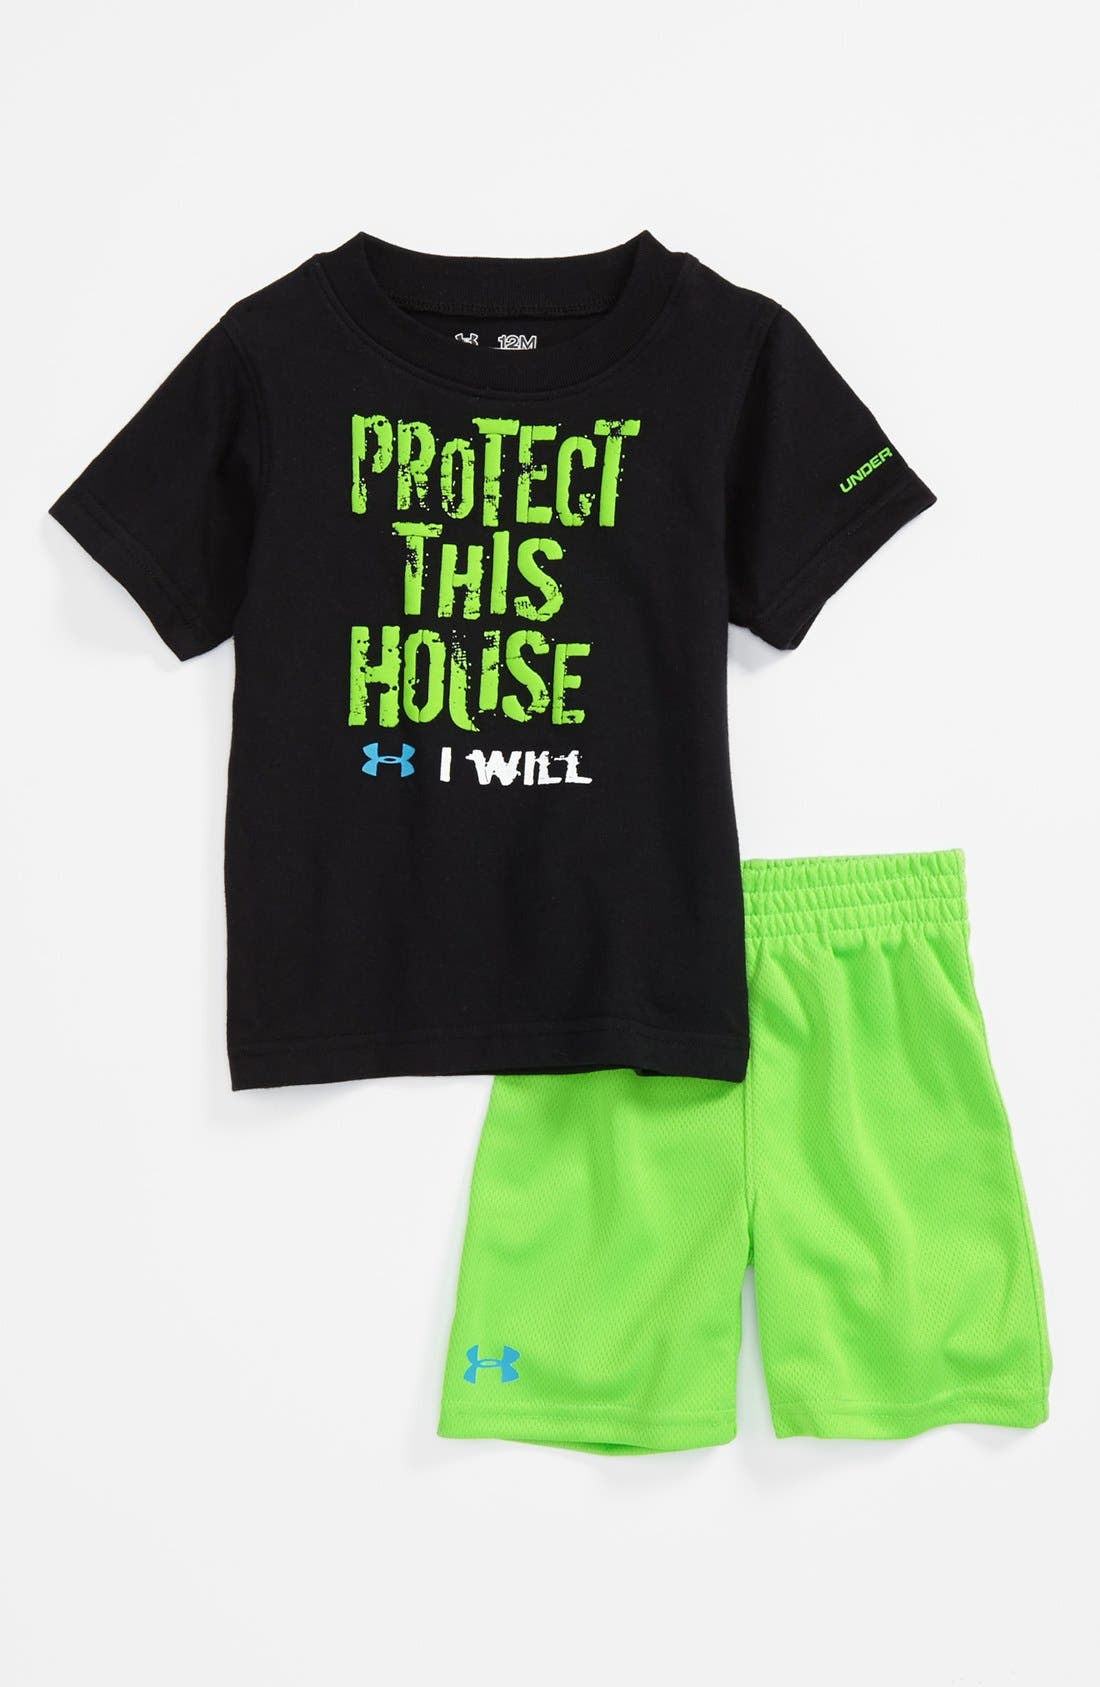 Main Image - Under Armour 'Protect This House' T-Shirt & Shorts (Baby Boys)